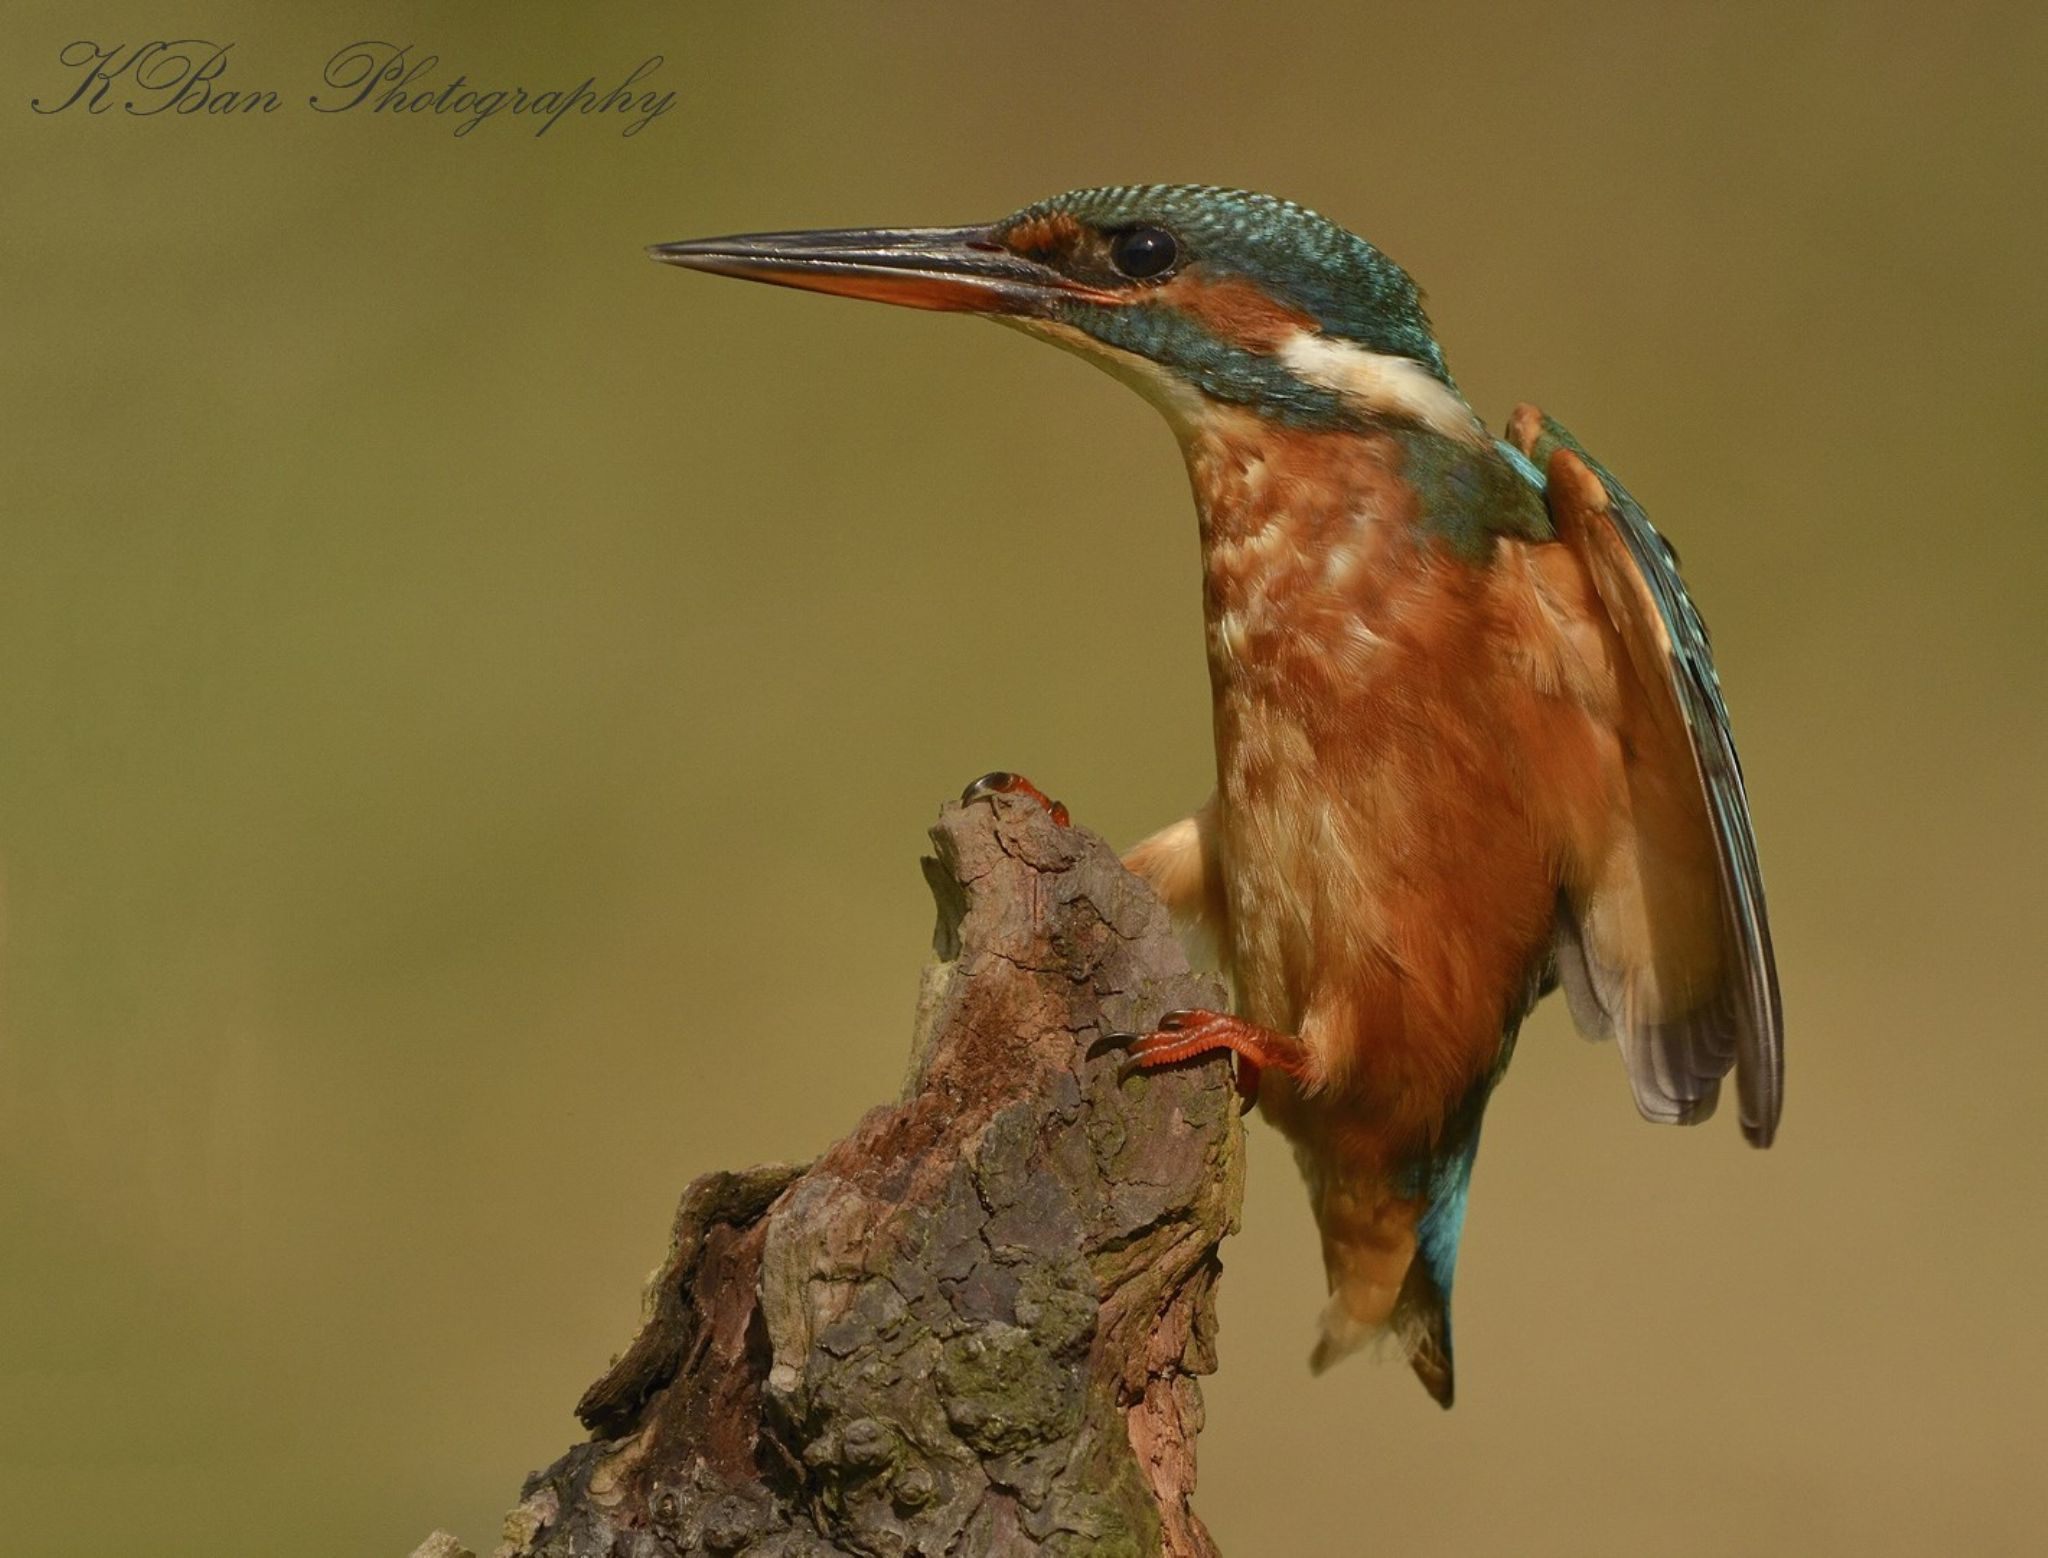 Landing Kingfisher  by keithbannister2